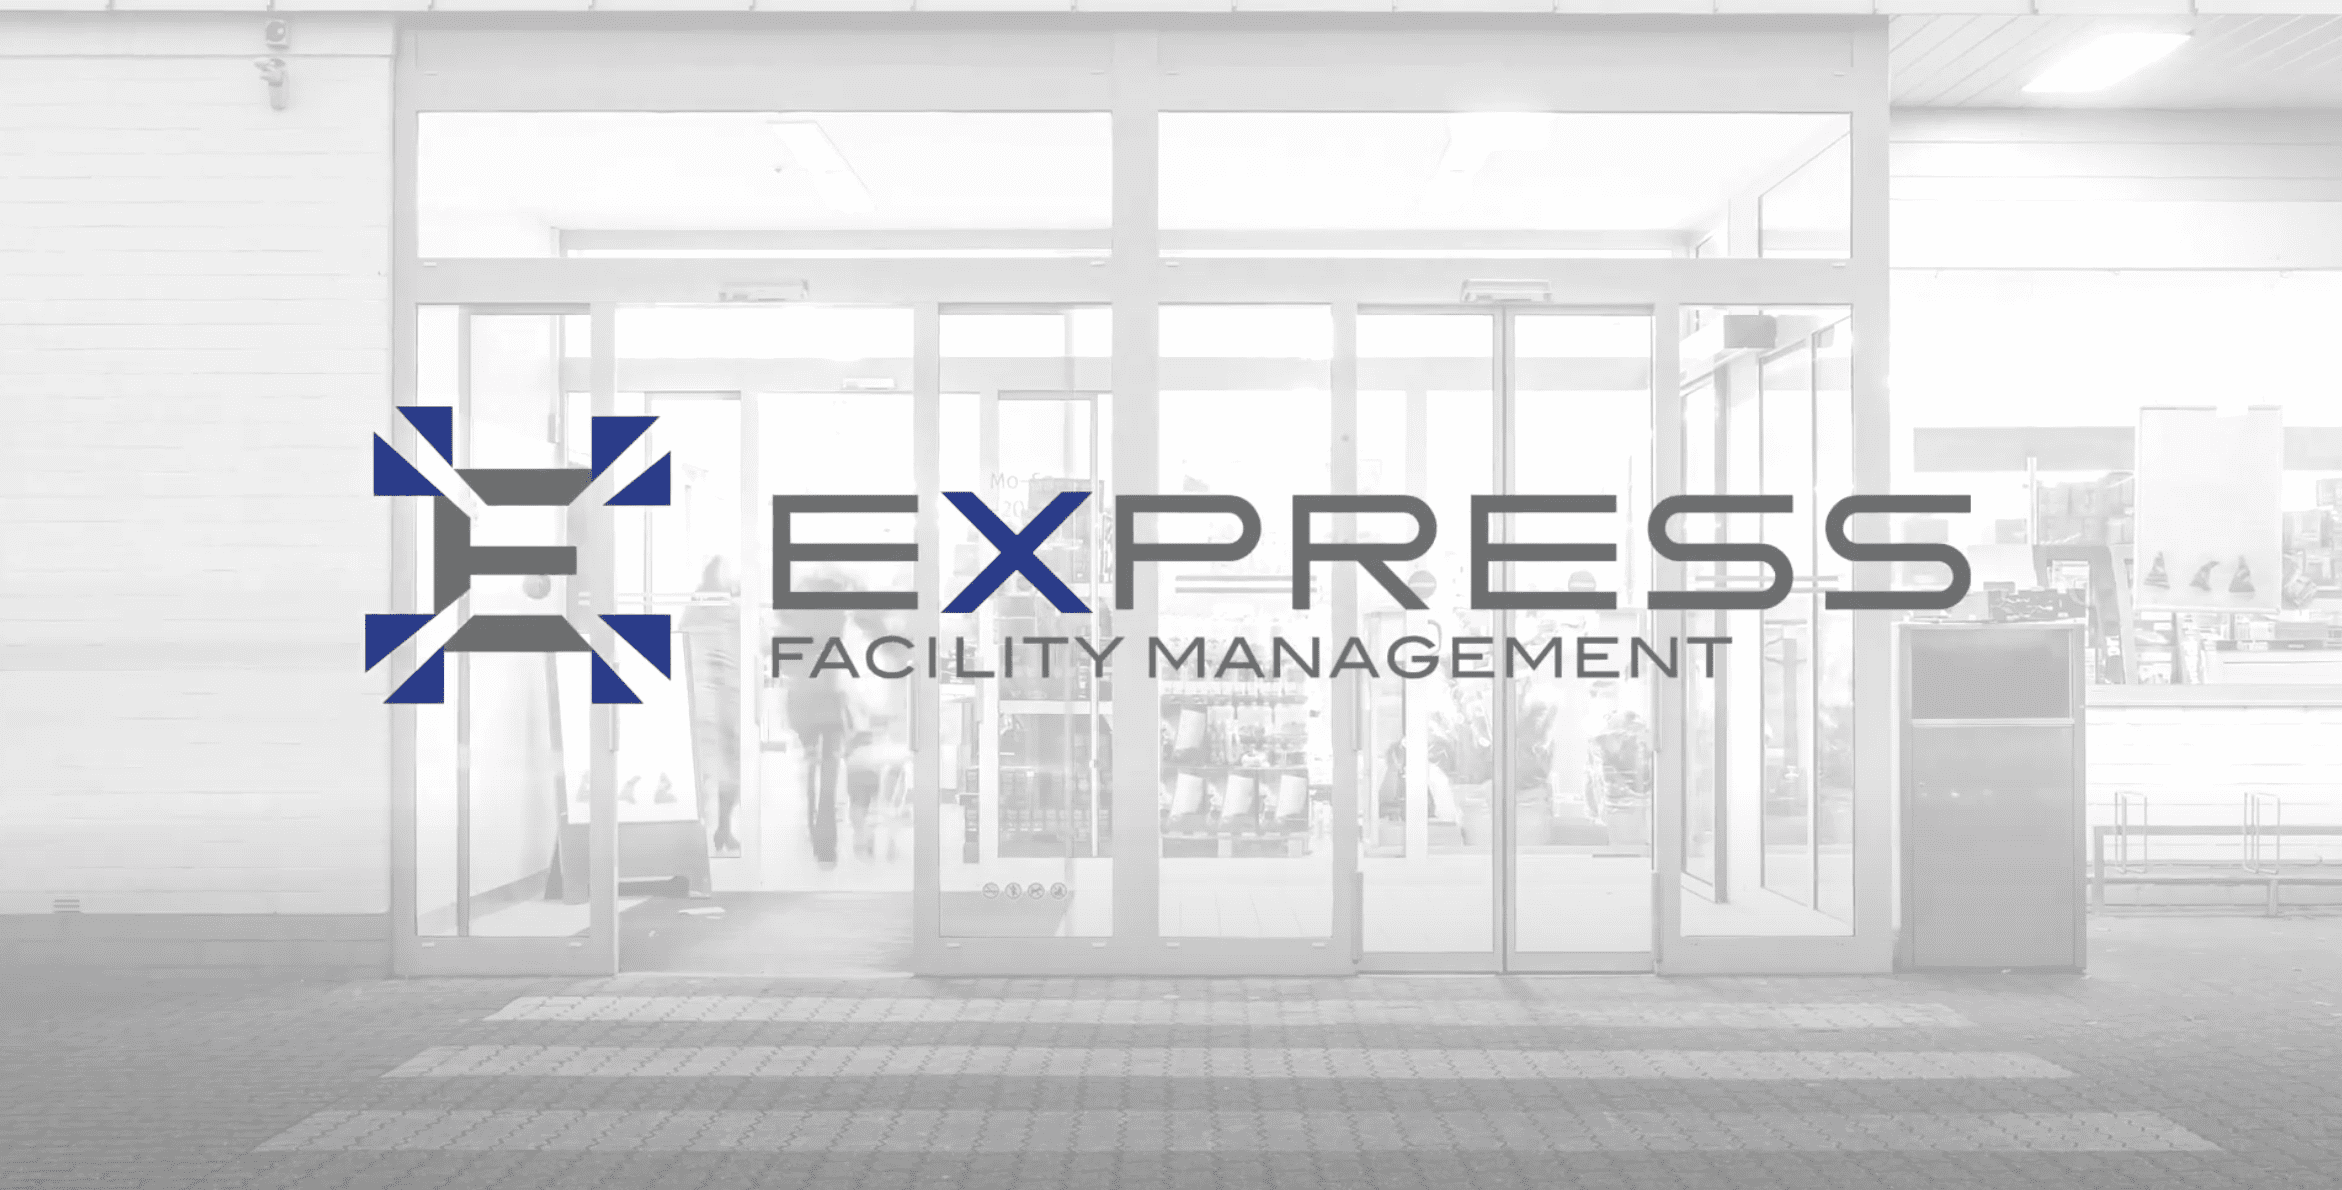 Integrated Facility Management - It is what we do